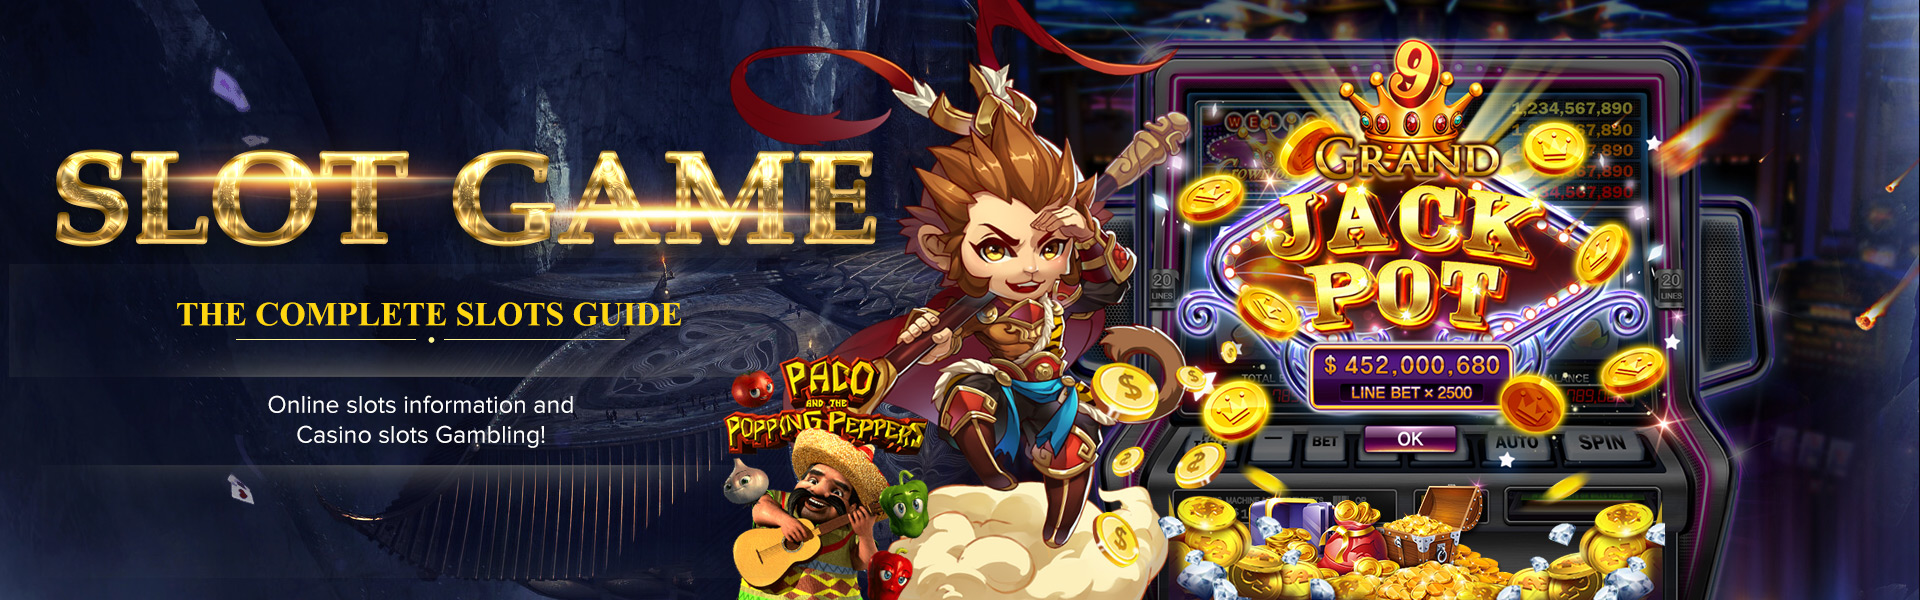 Tutorial to Win Playing Online Slot Gambling on an Android Phone